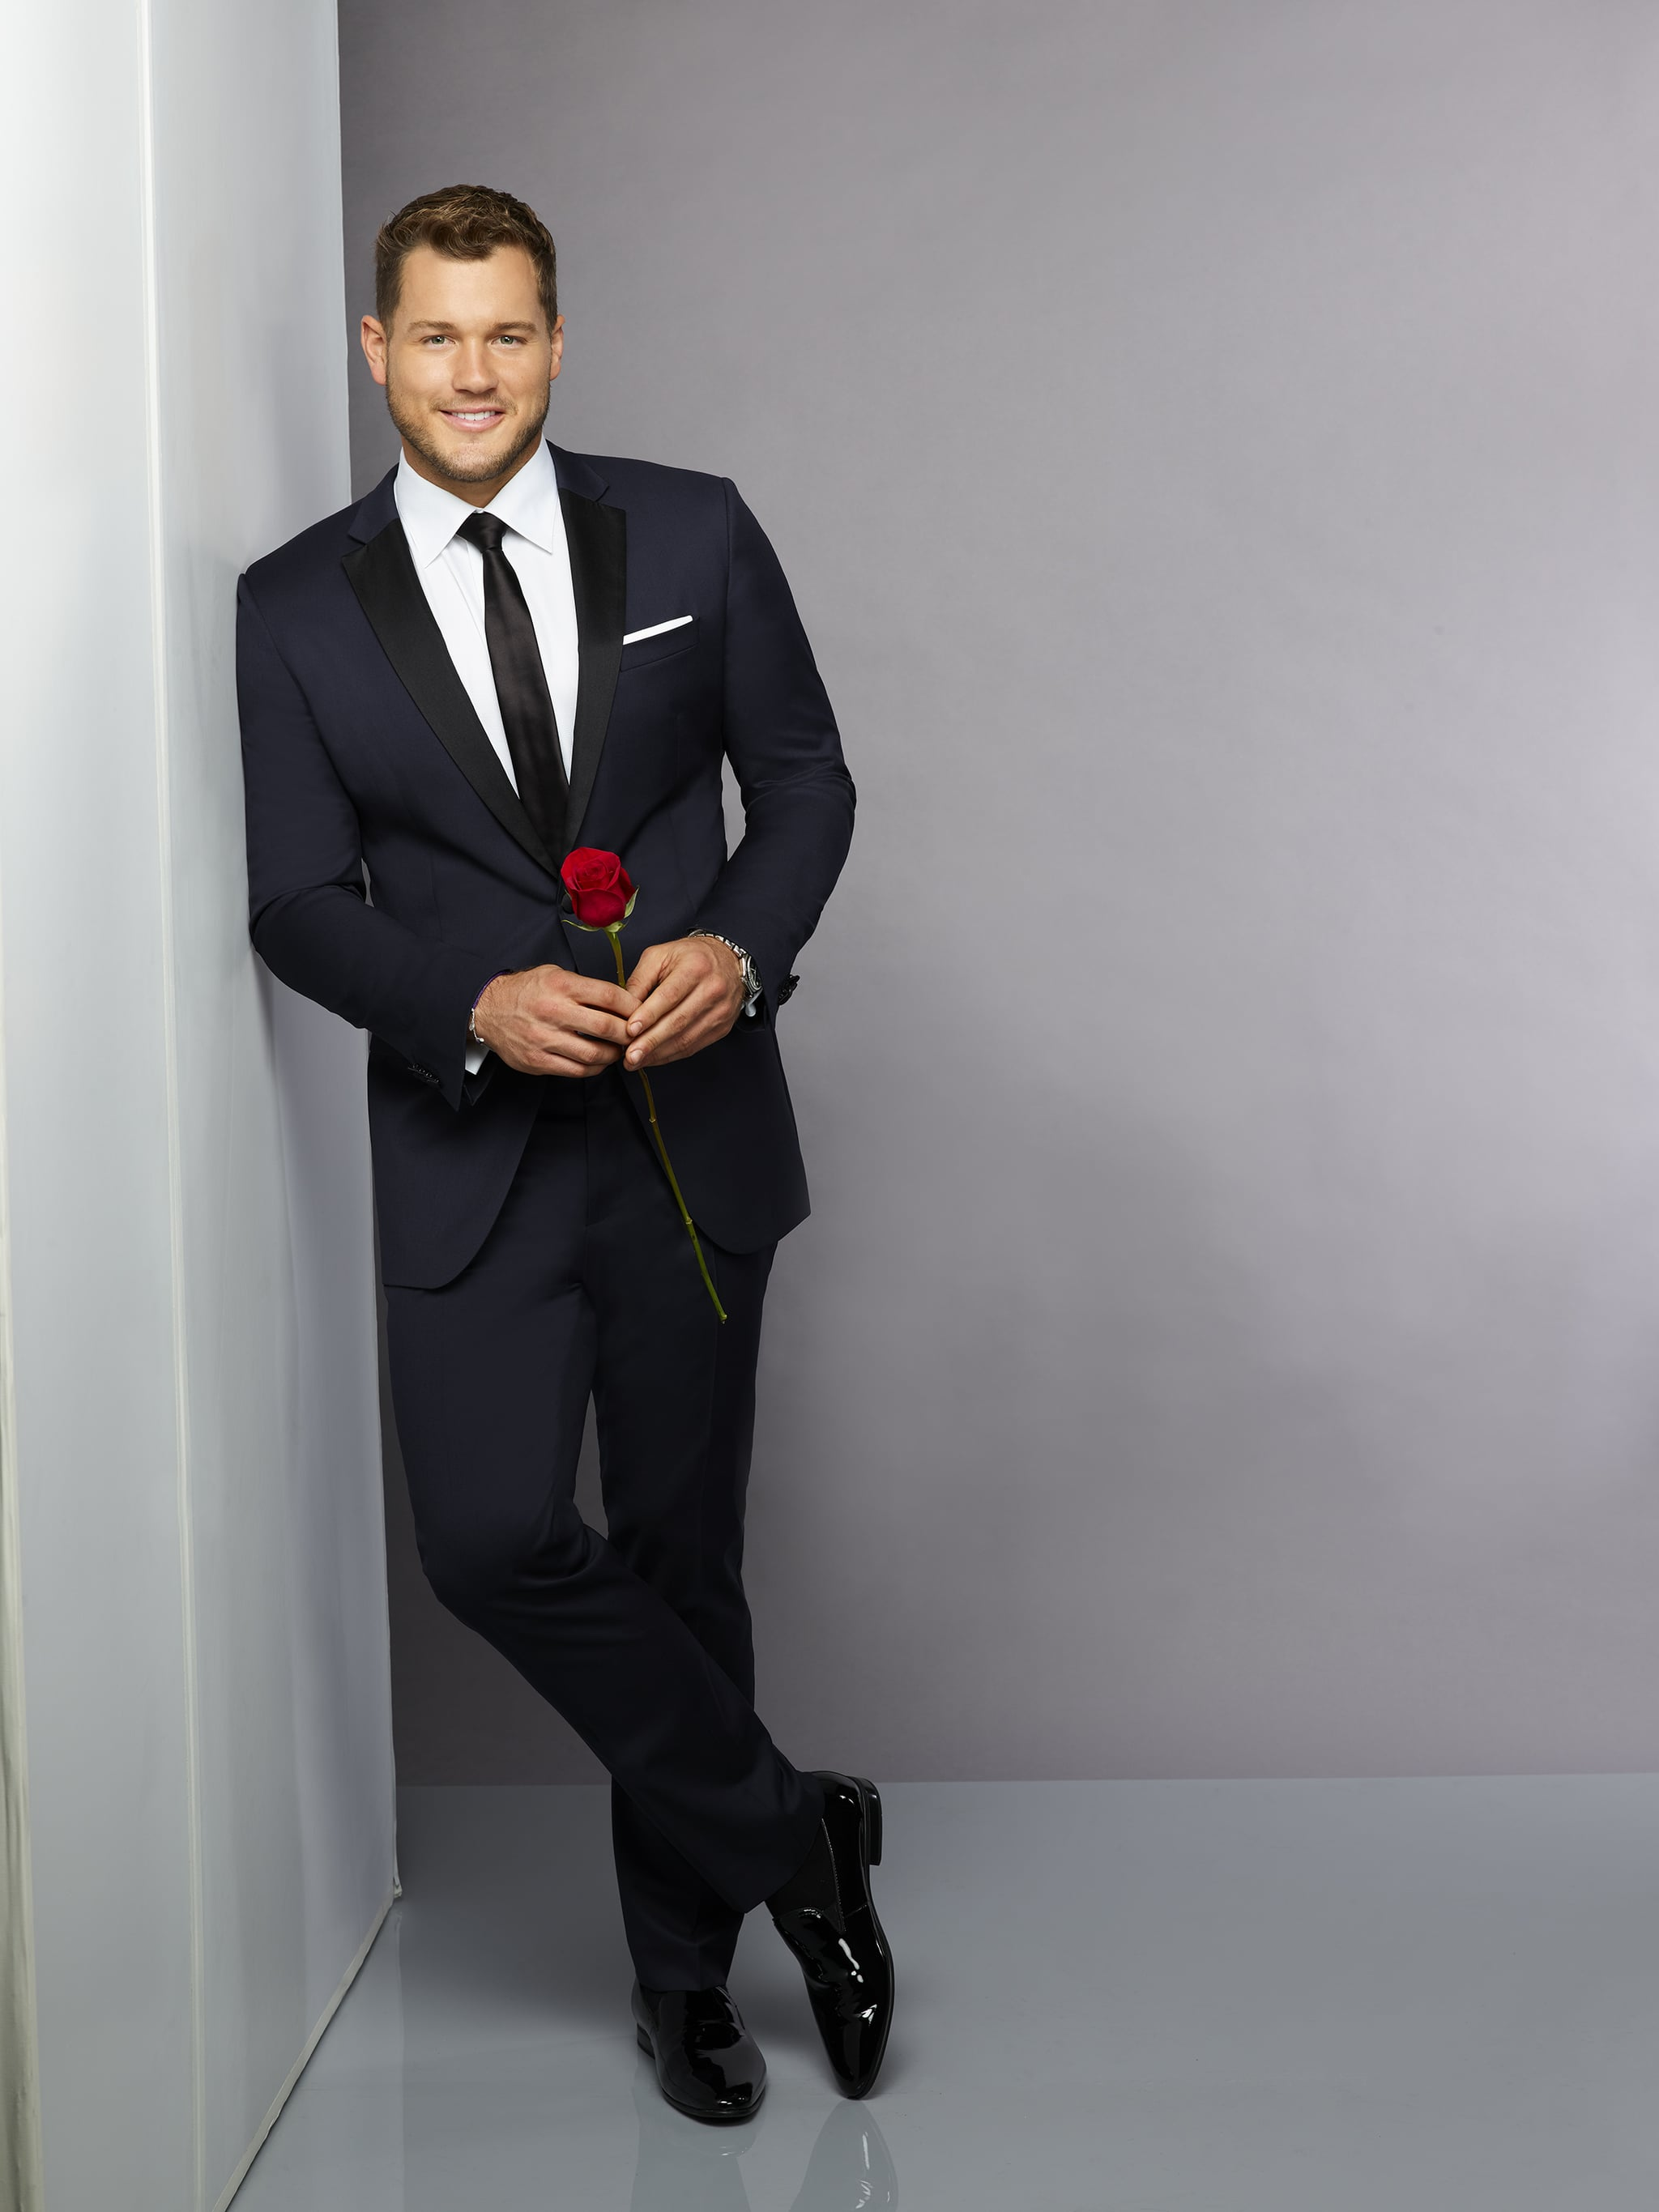 THE BACHELOR - Colton Underwood burst onto the scene during season 14 of